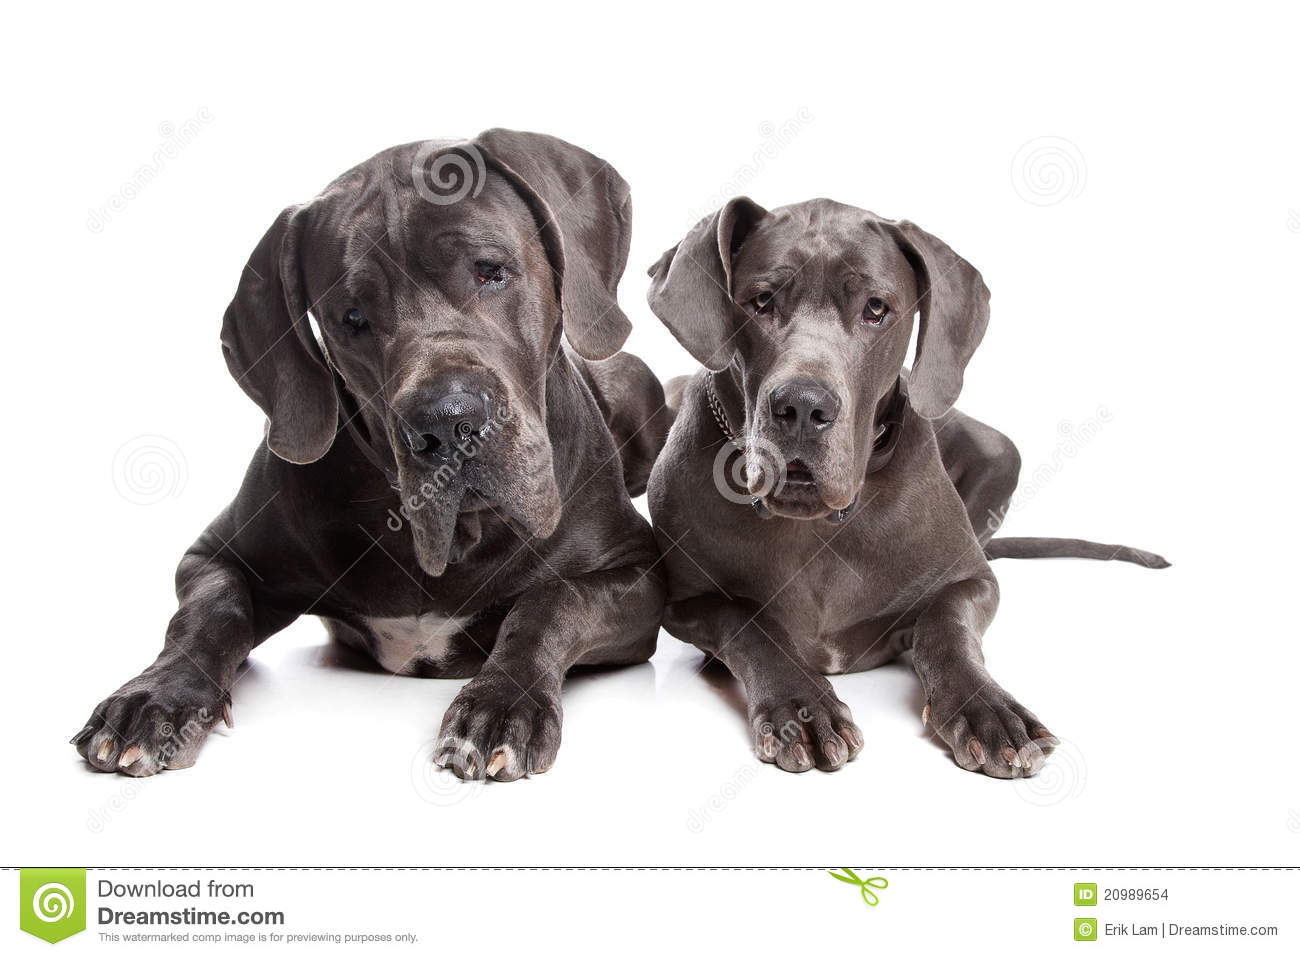 Two grey great Dane dogs on front of a white background.